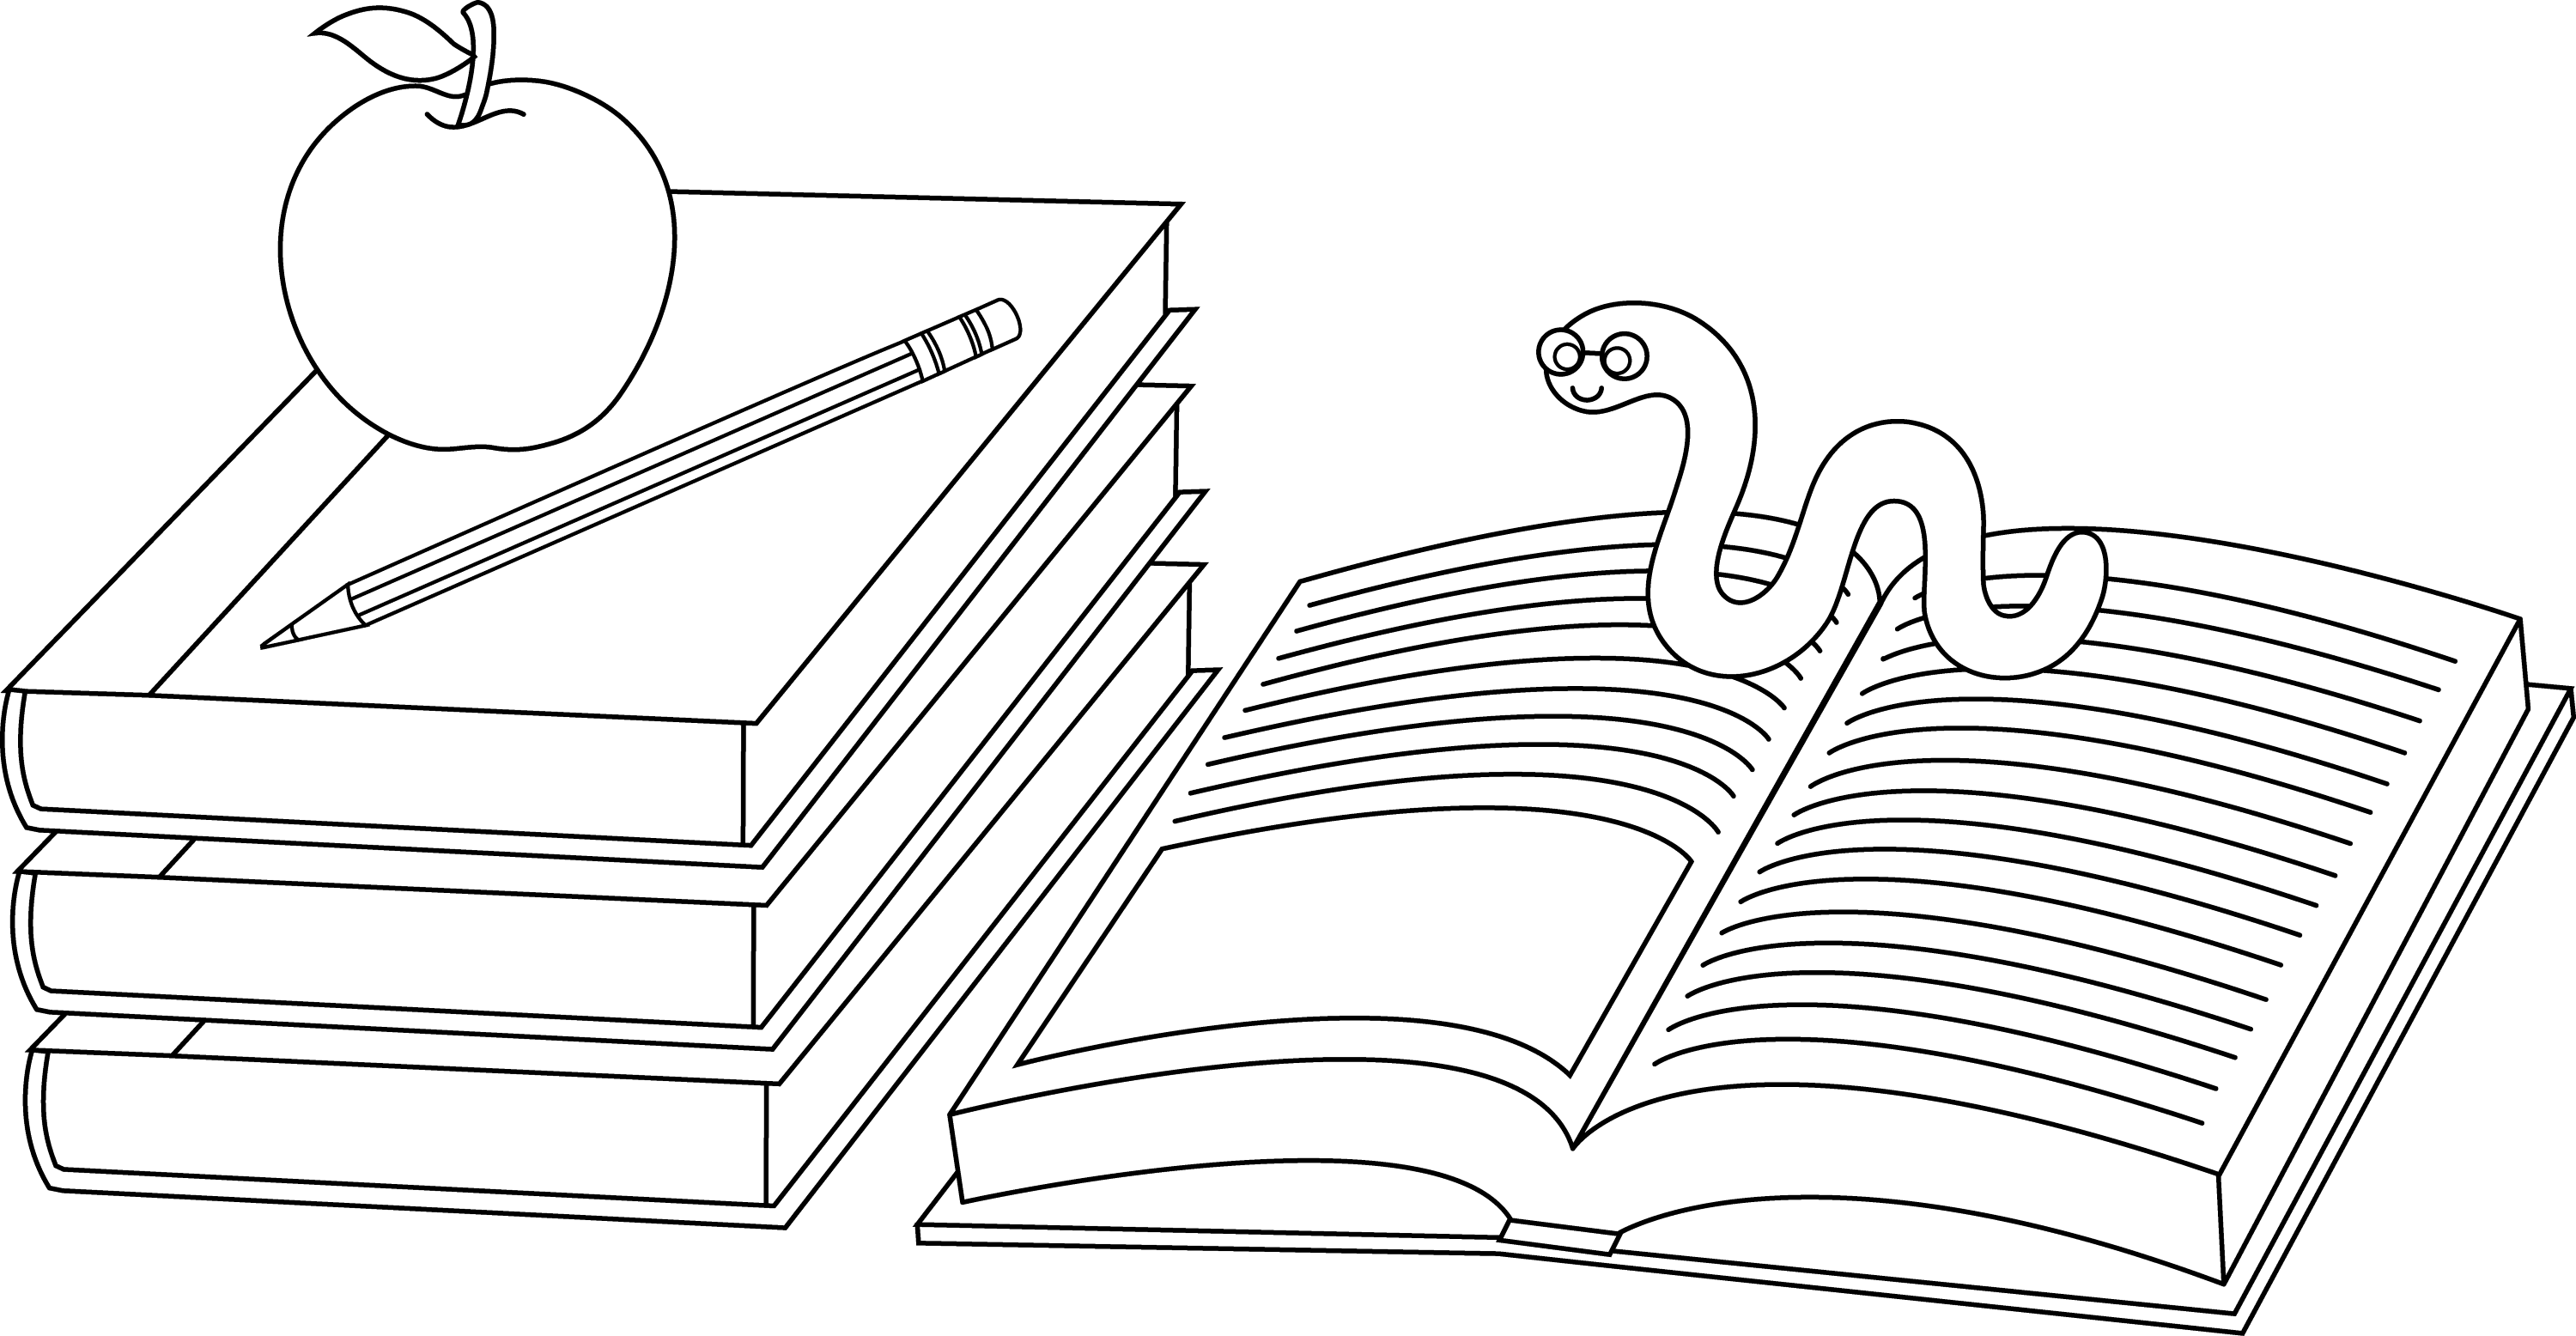 colorable books and bookworm free clip art